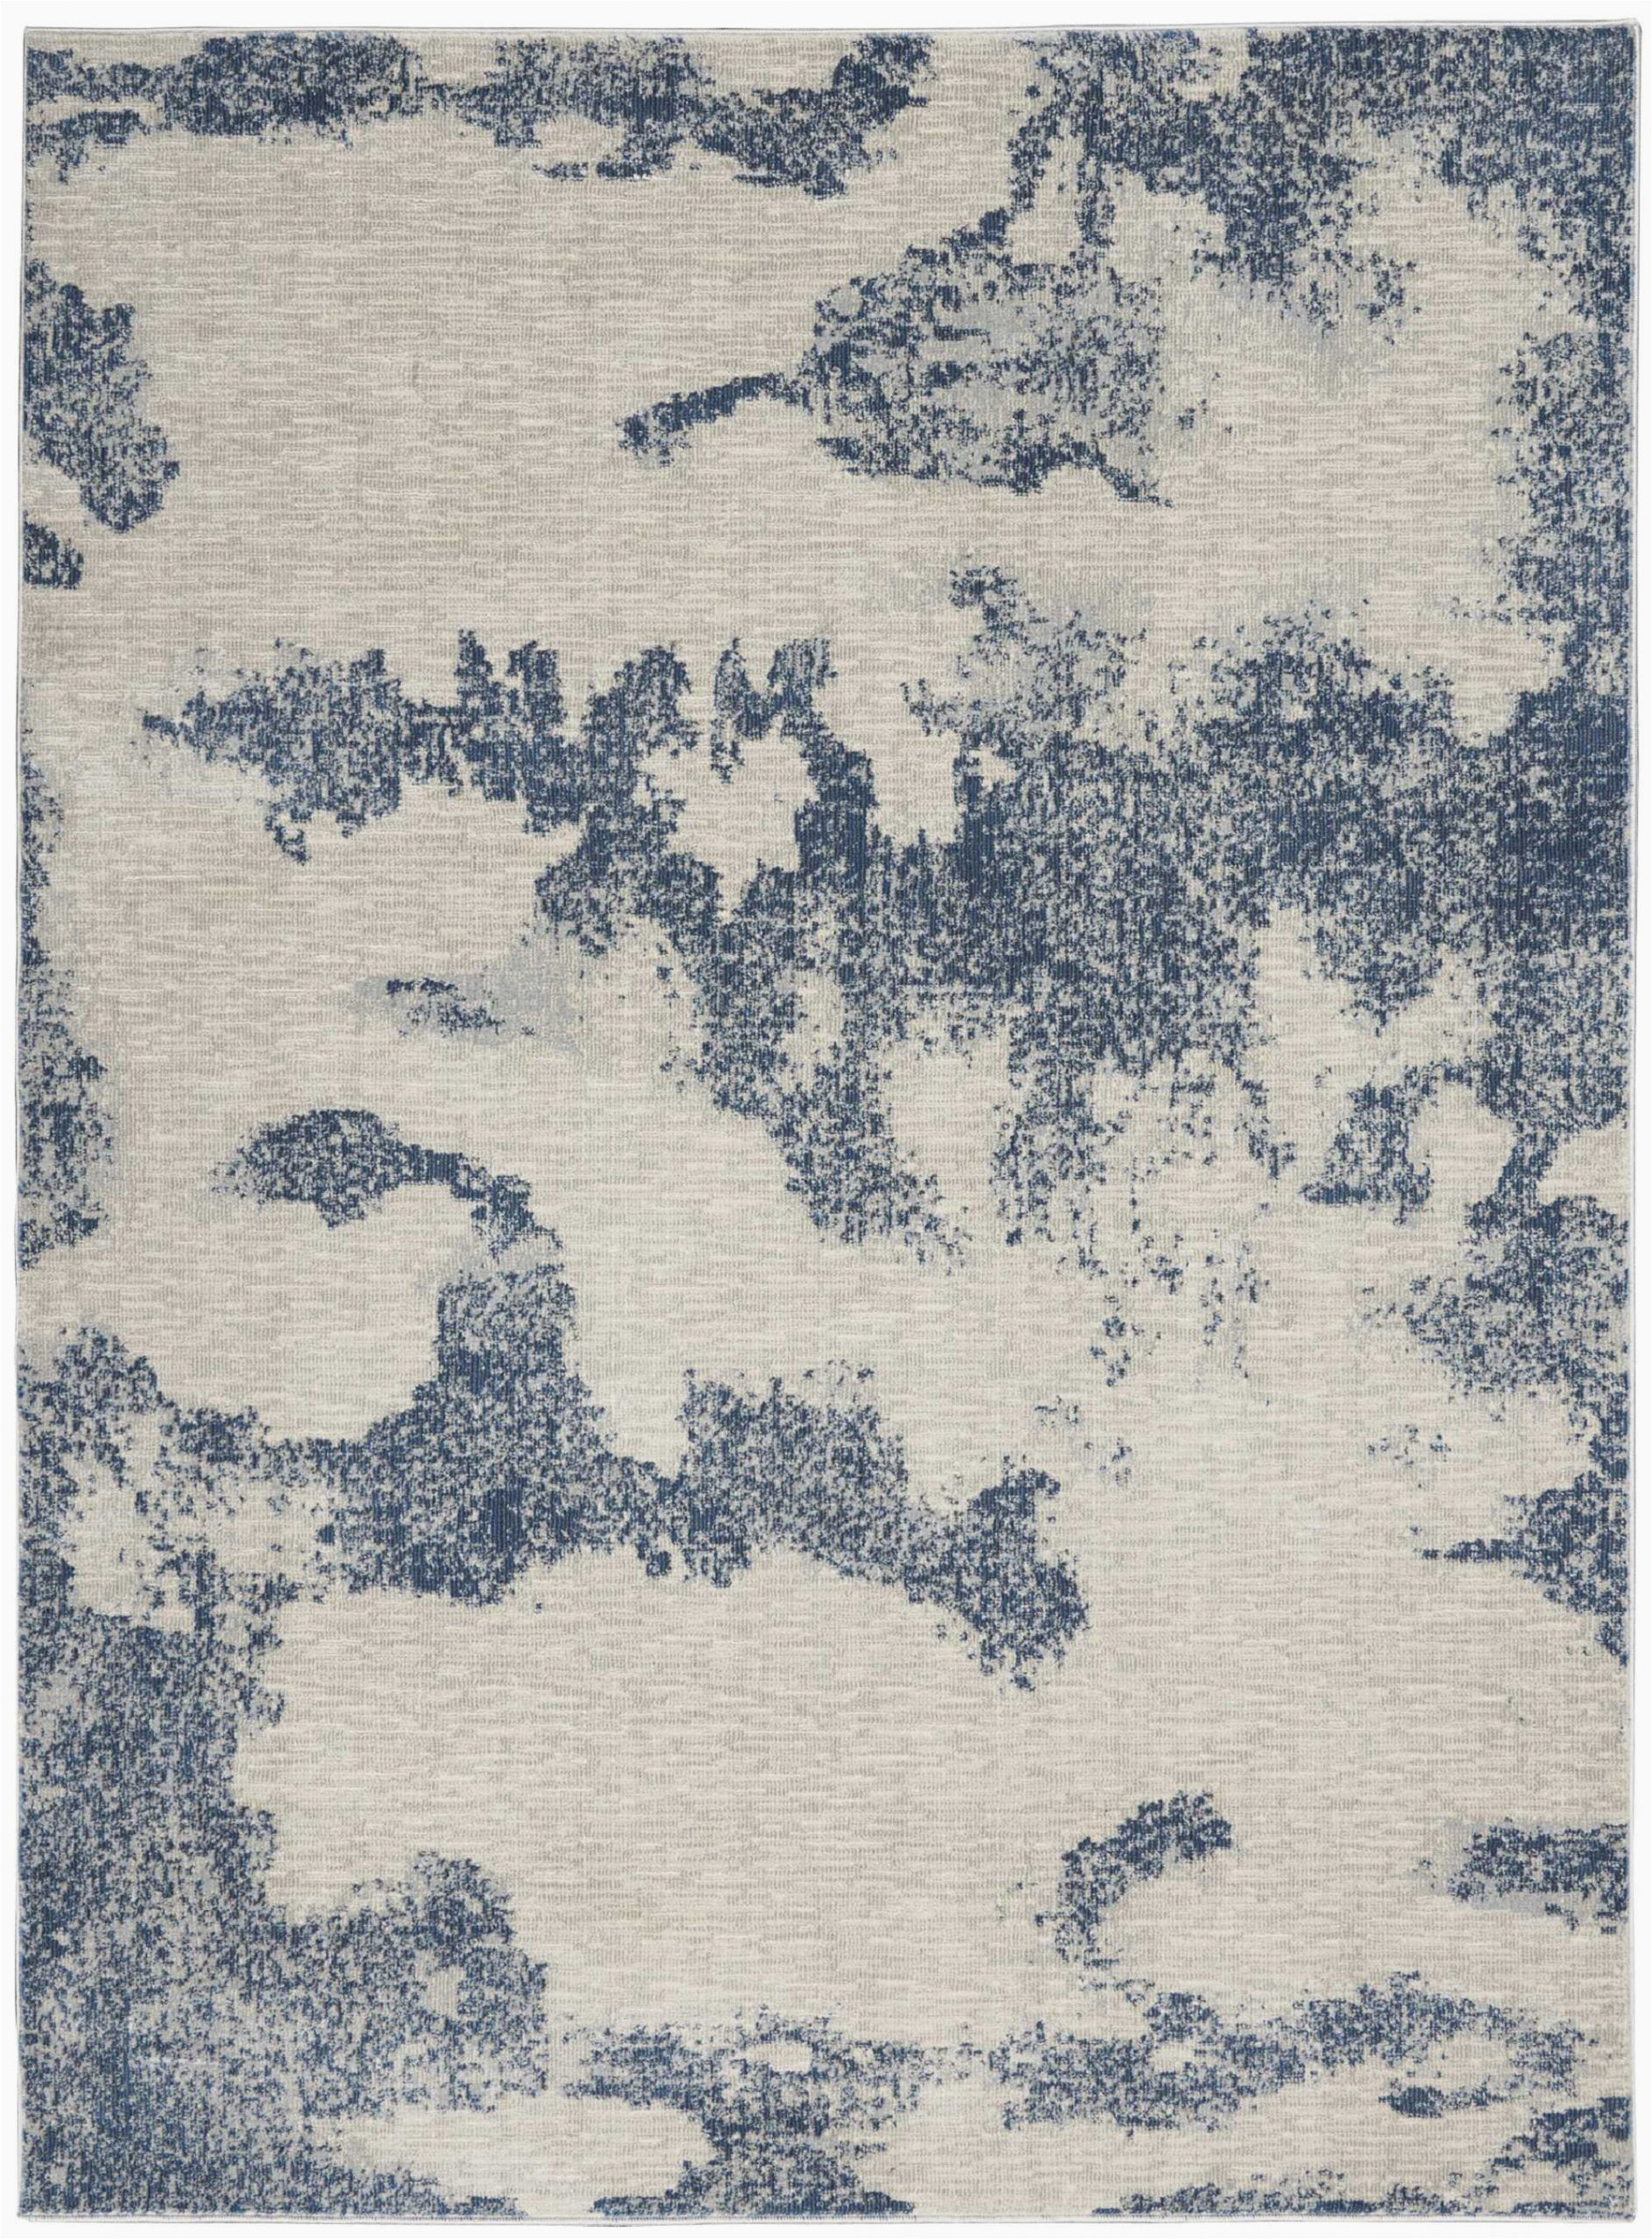 schooley abstract ivorynavy blue area rug